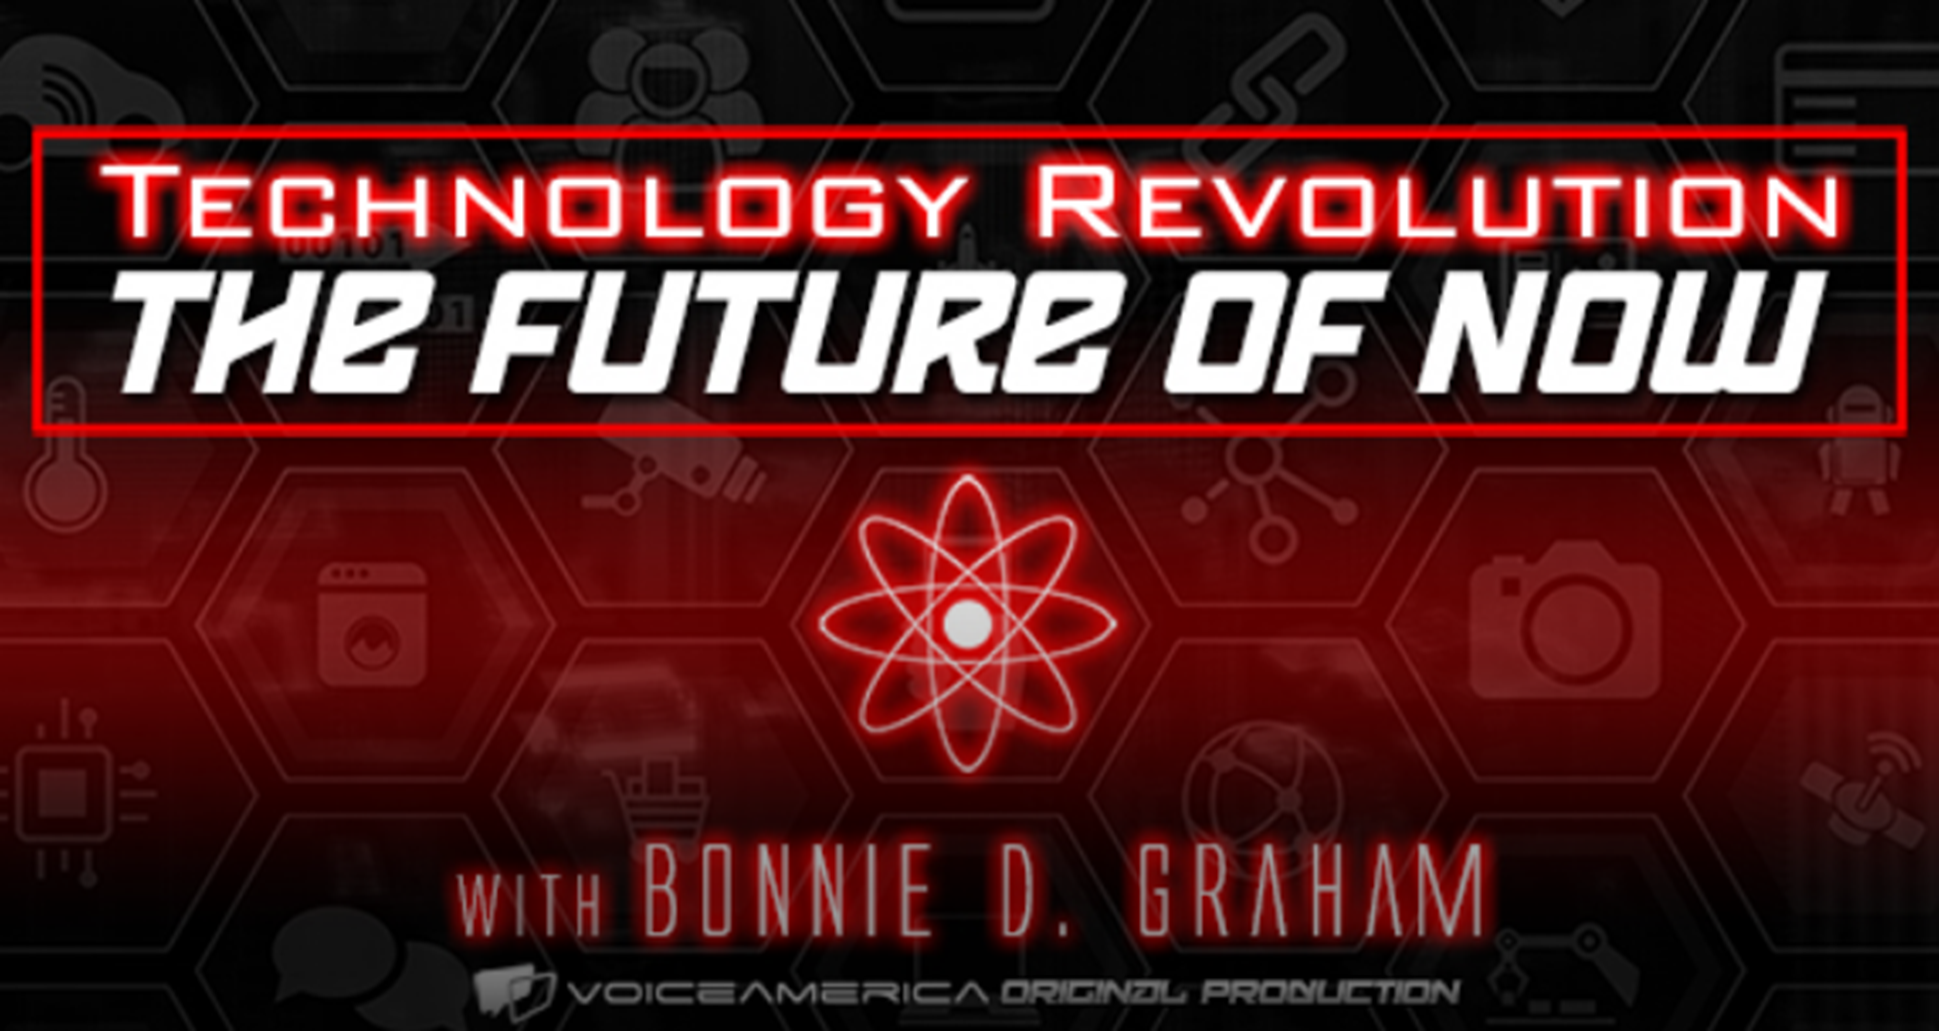 The Future of Now - Digital Ethics